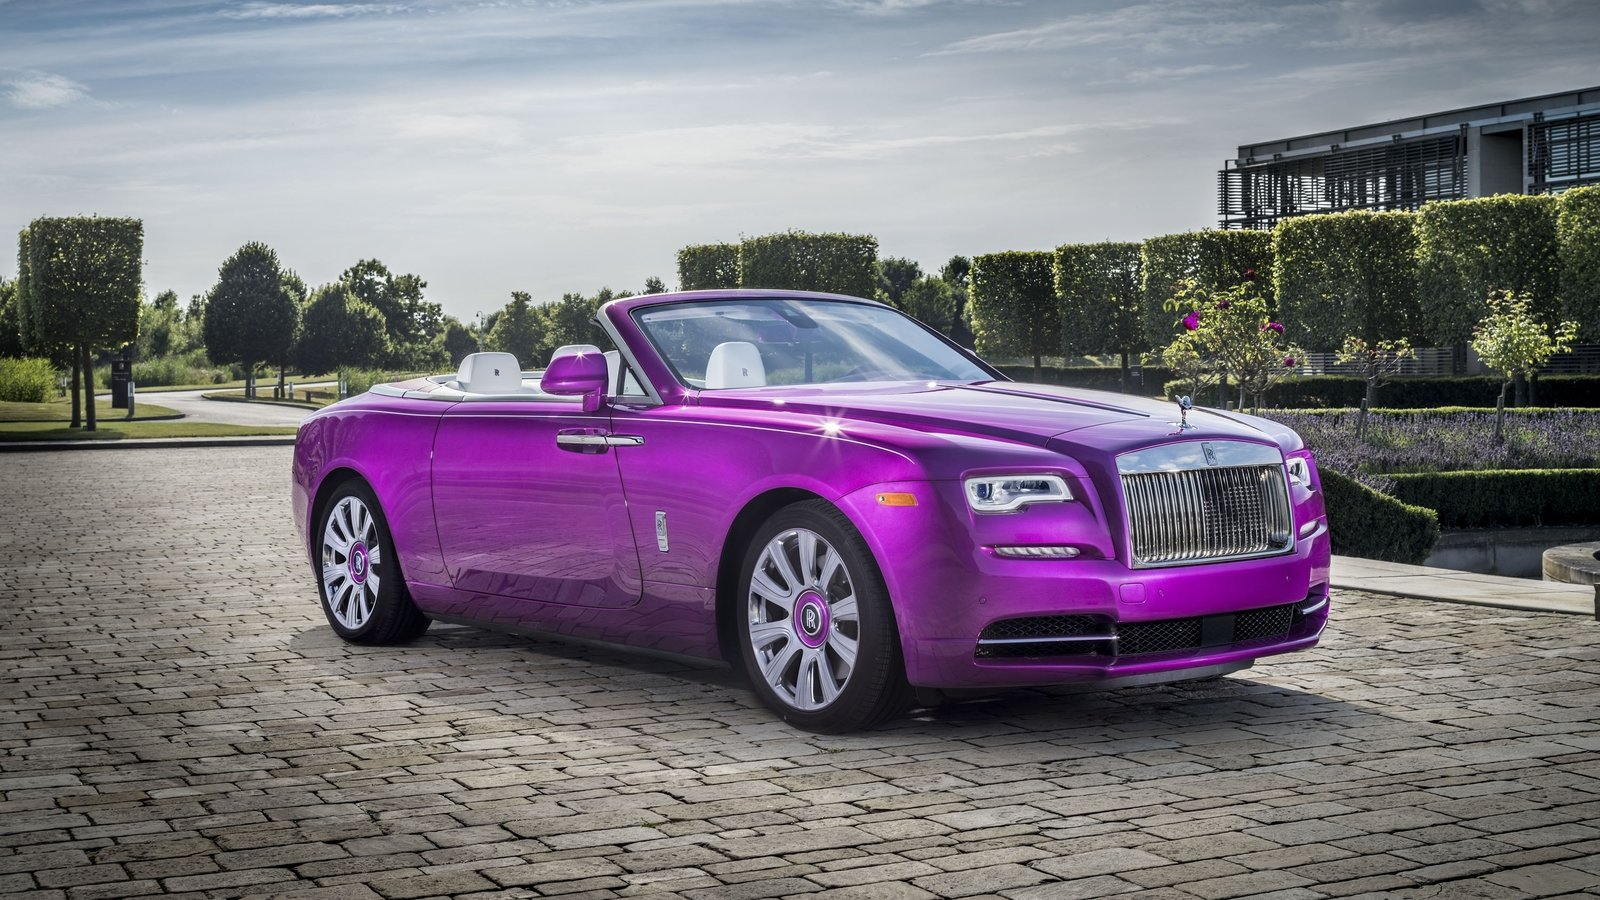 Rose Gold Dodge Challenger >> 2017 Rolls Royce Dawn In Fuxia Review - Top Speed